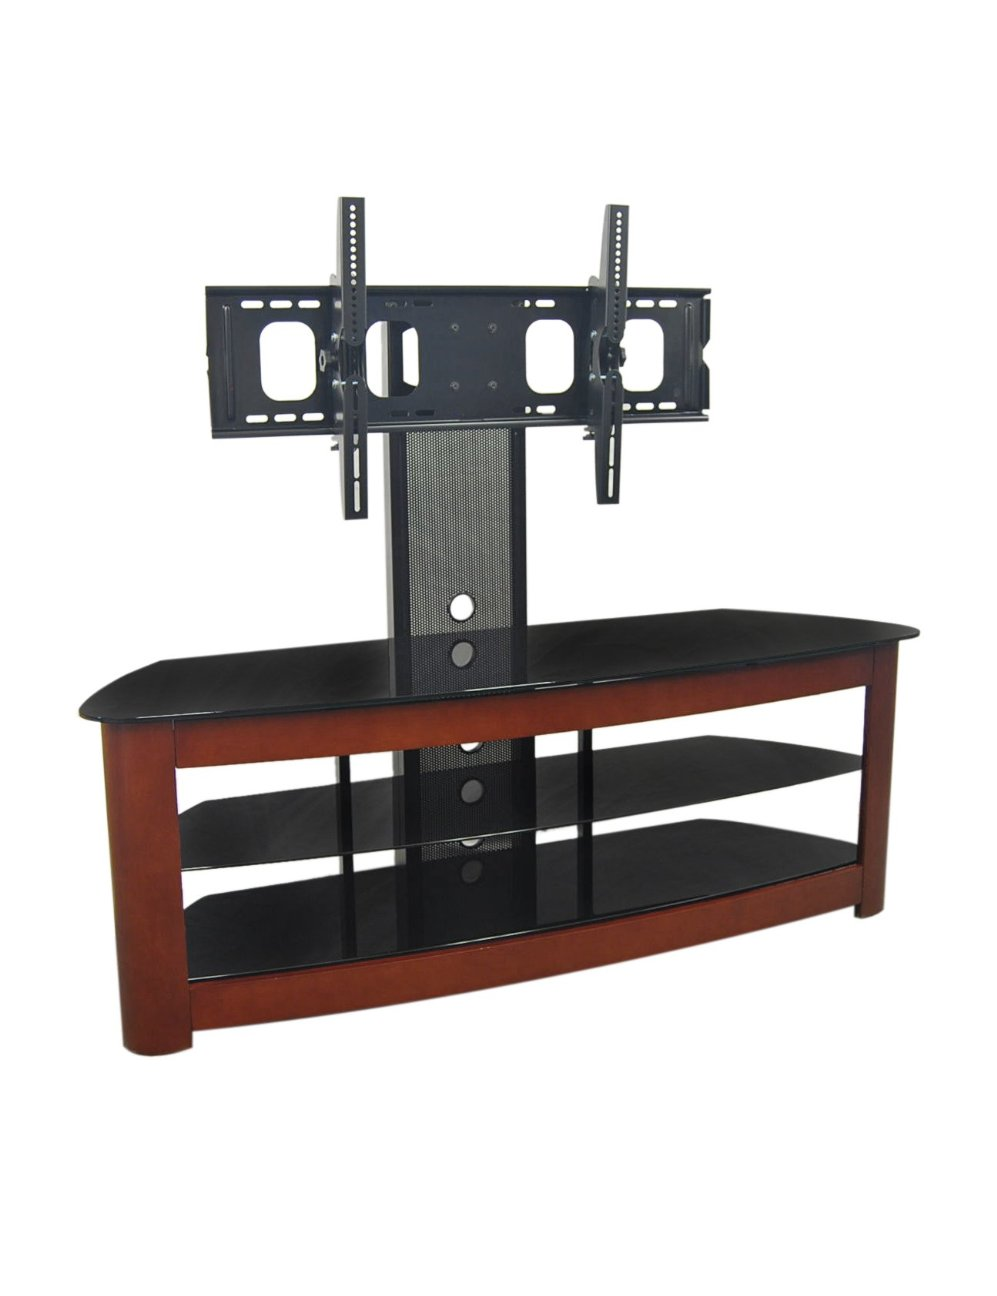 60 inch corner tv stand - Convenience Concepts Design2go Wide 3tier Wood Grain Tv Stand Black